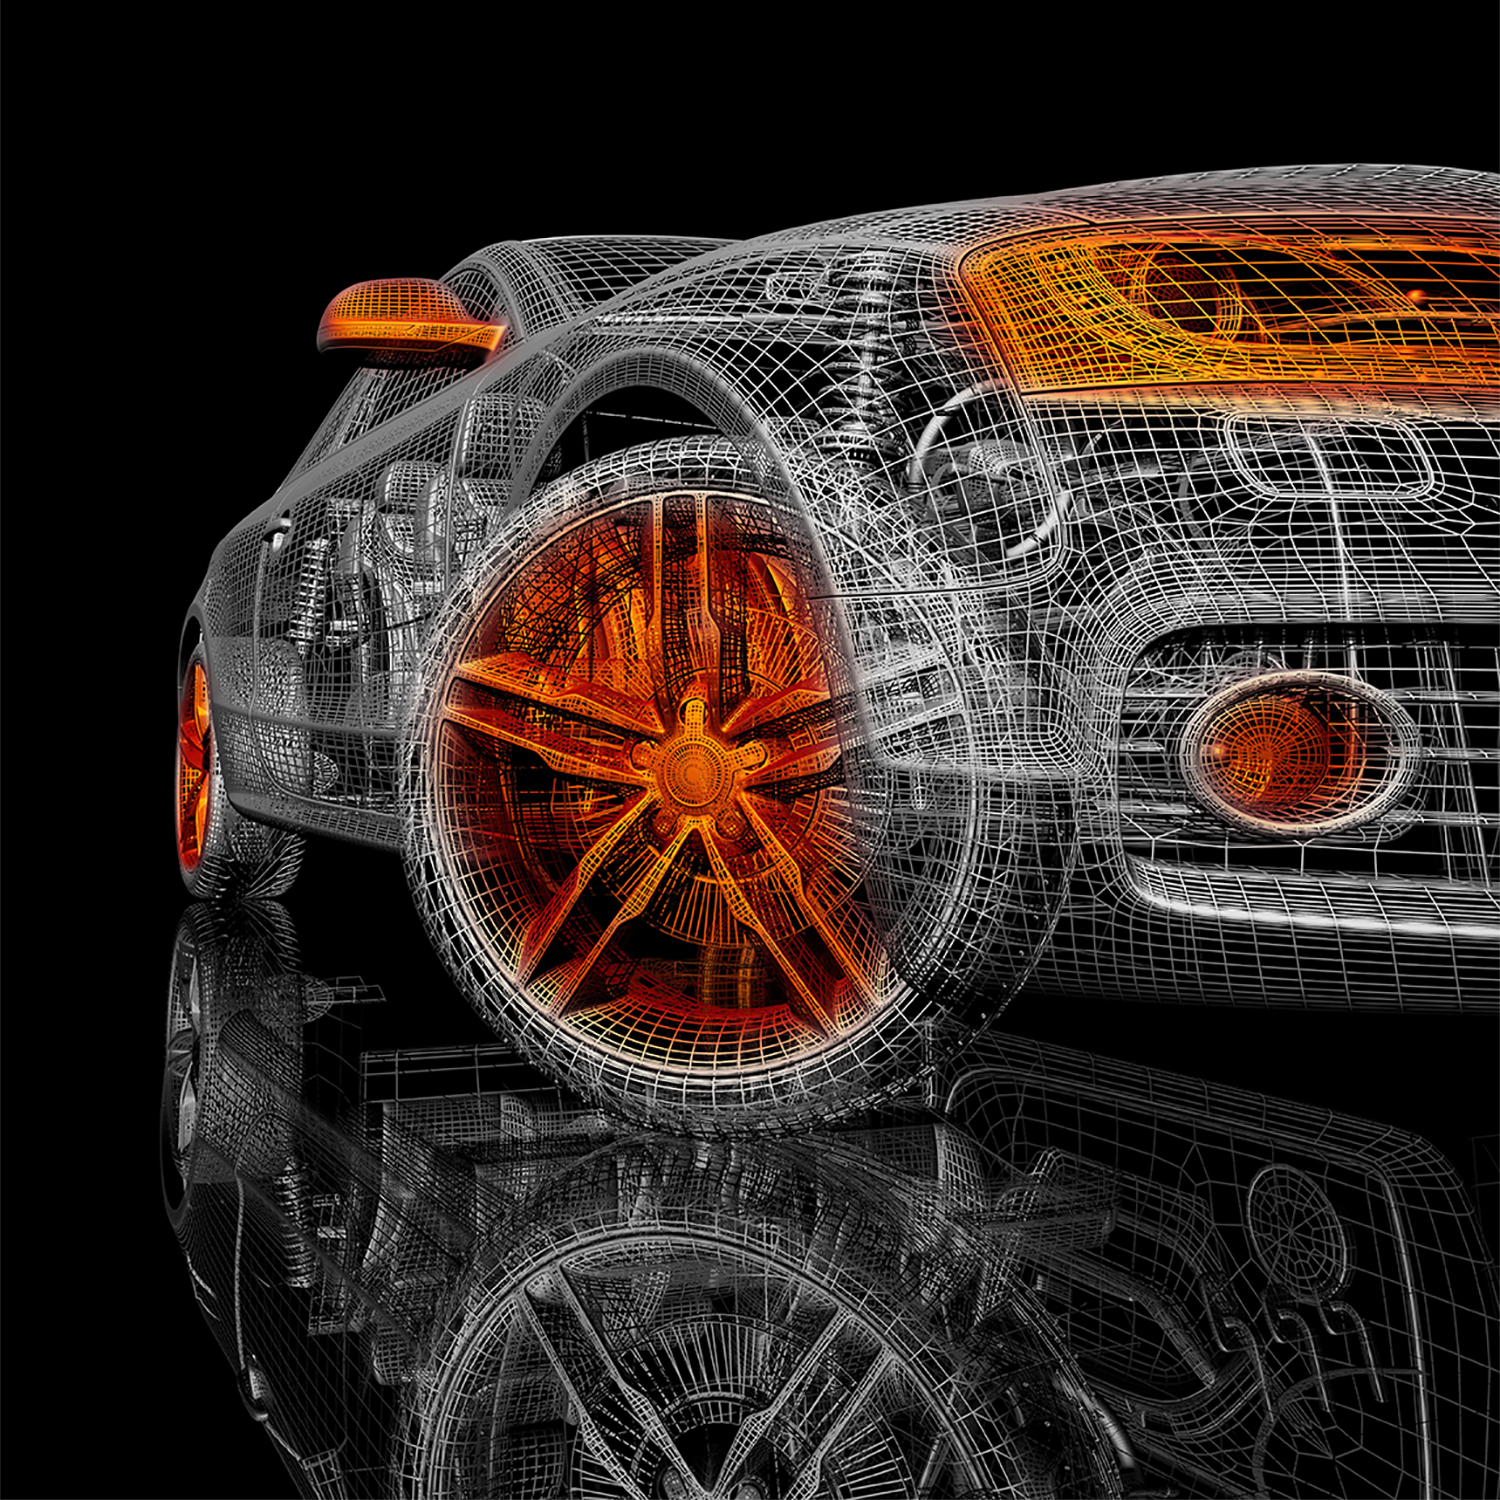 - A 3D model, constructed in wireframe comprises the inner structure, or armature on which the surfaces of an object are placed. The model is what gives the object its visual integrity; it's what makes the object viable as